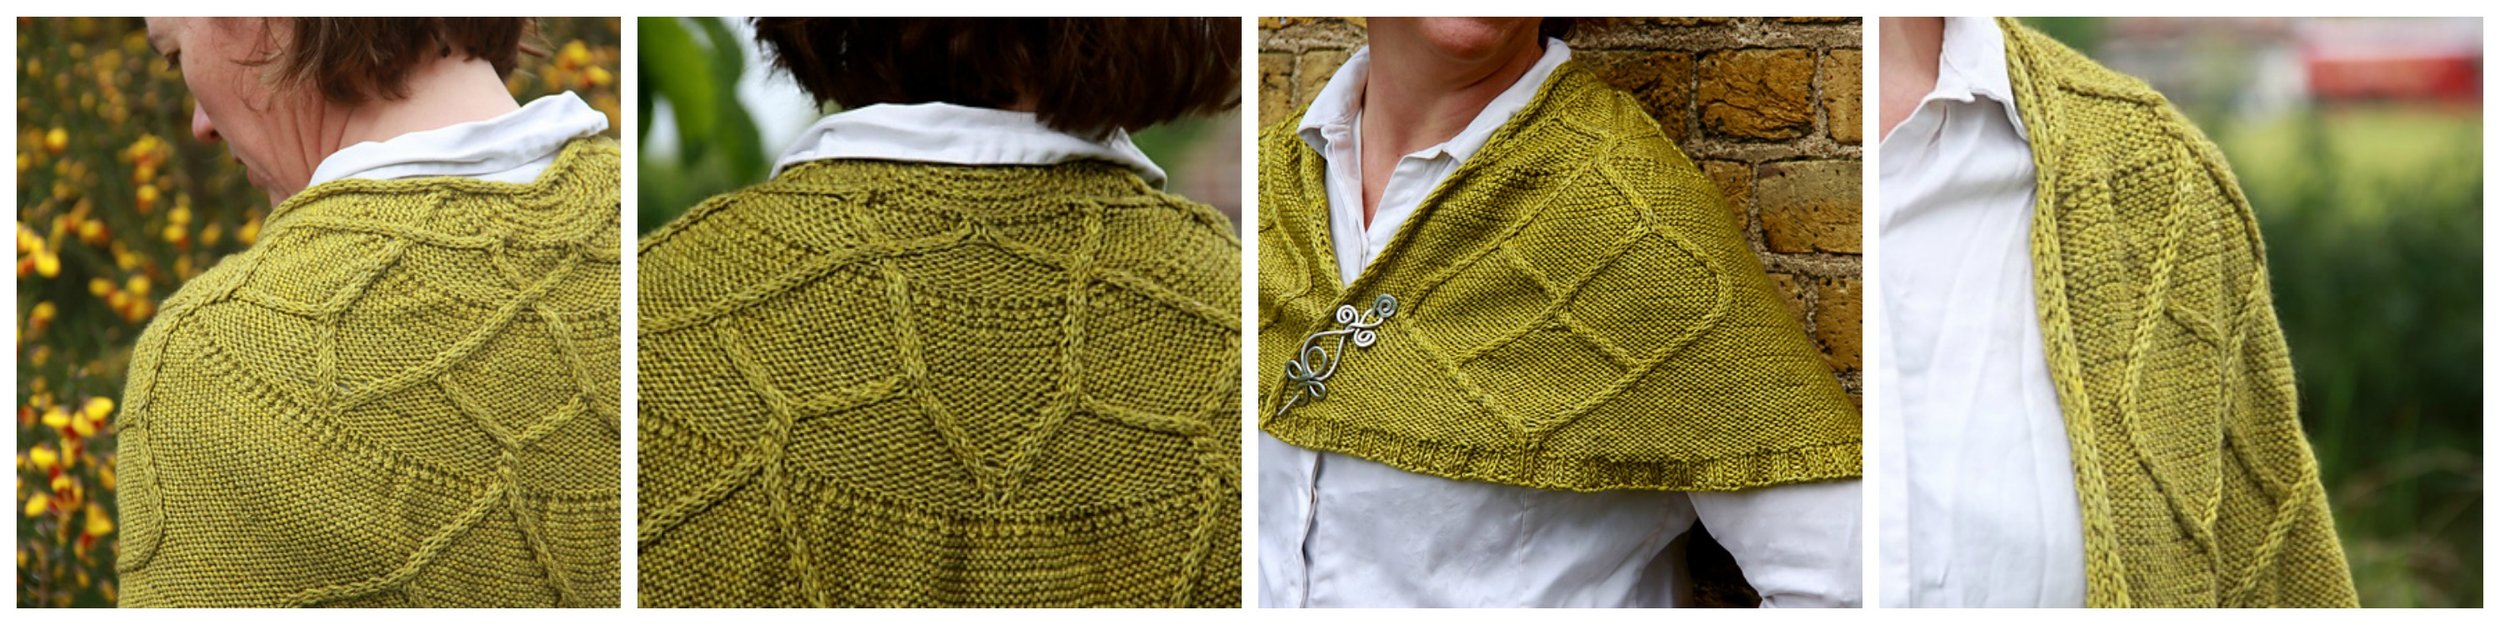 Rachel's latest pattern has launched as part of Kettle Yarn Co.'s Teheda Collection. The Dorado shawl is knit in Beyul DK and you can  download the pattern on Ravelry !